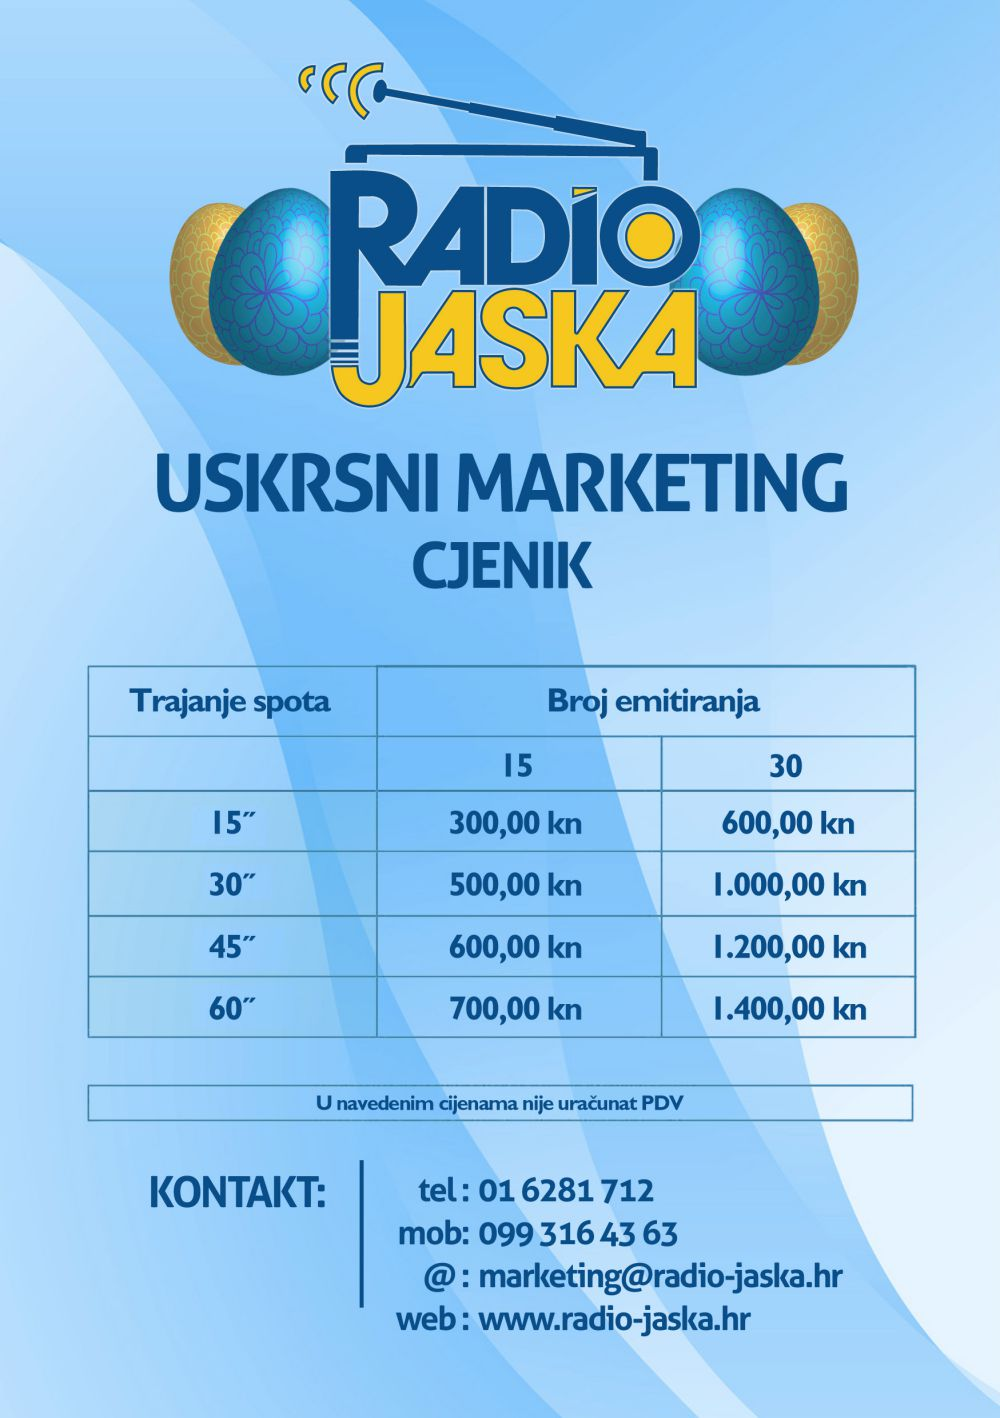 Uskrsni Marketing